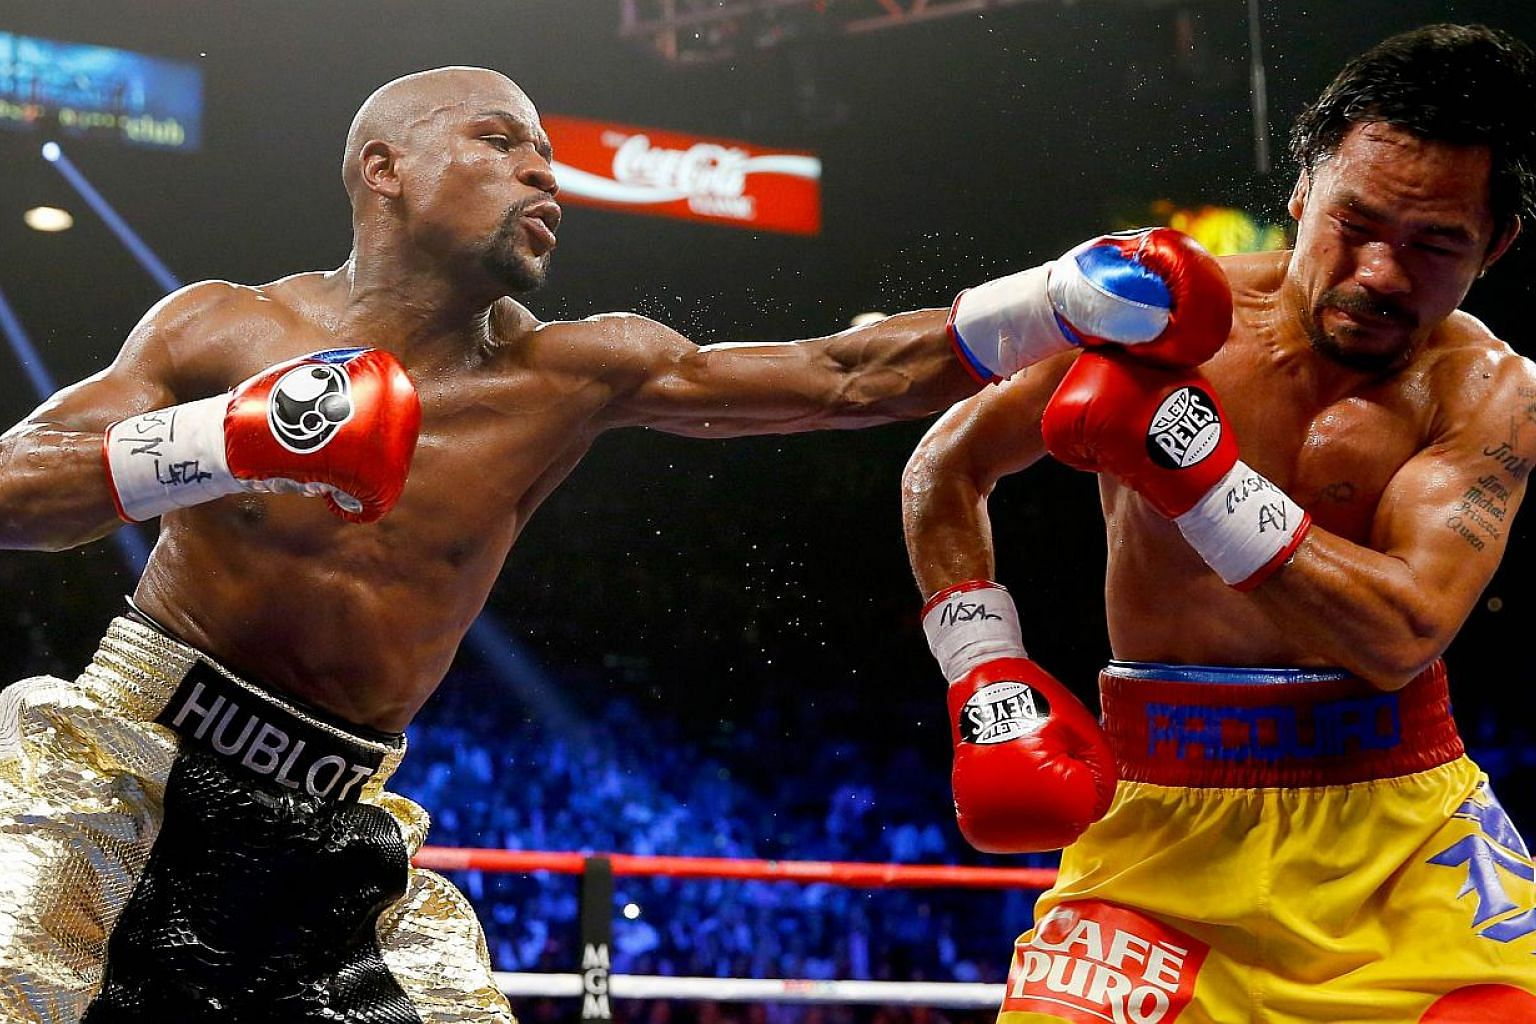 """Floyd Mayweather Jr throws a left at Manny Pacquiao during their welterweight bout on May 2, 2015 in Las Vegas, Nevada. The """"Fight of the Century"""" between boxing greats Floyd Mayweather Jr and Manny Pacquiao generated record pay-per-view re"""